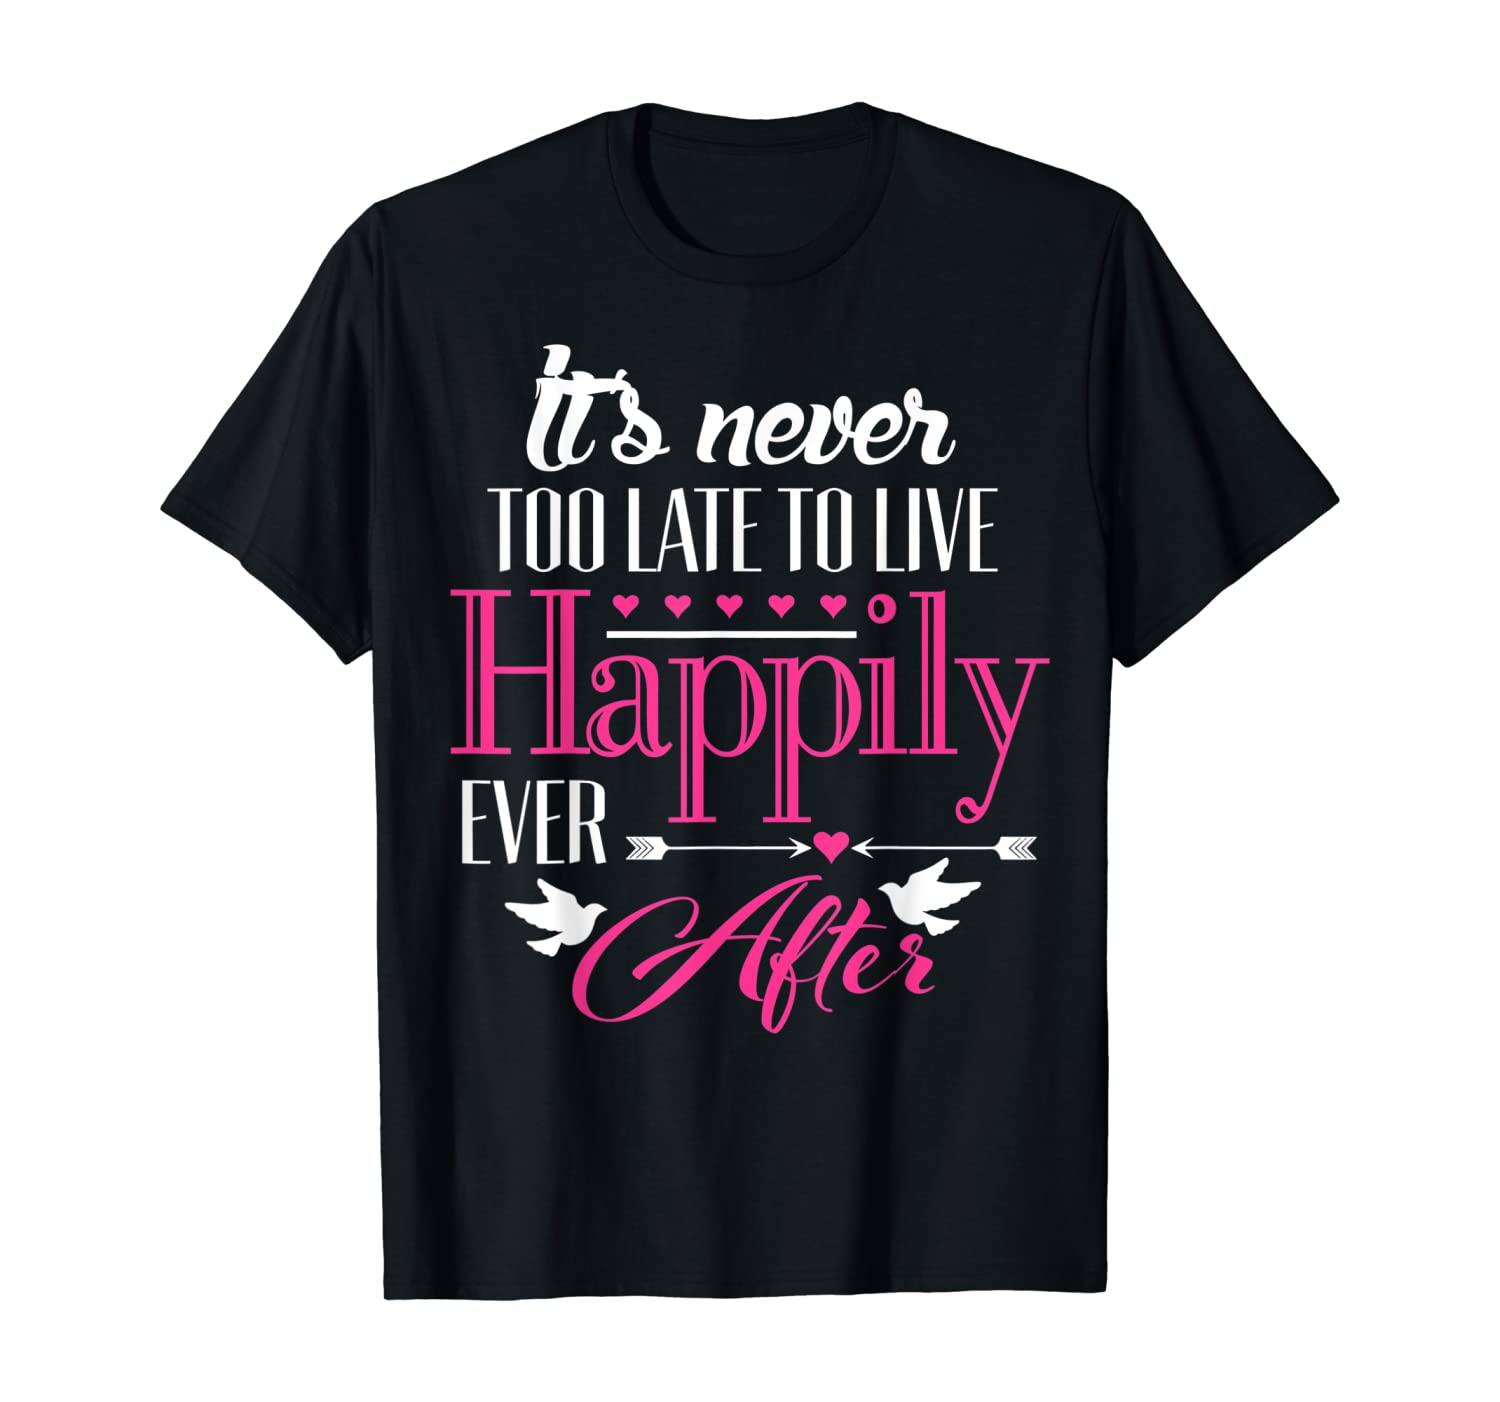 29th Wedding Anniversary Gift For Wife 1991 T-Shirt